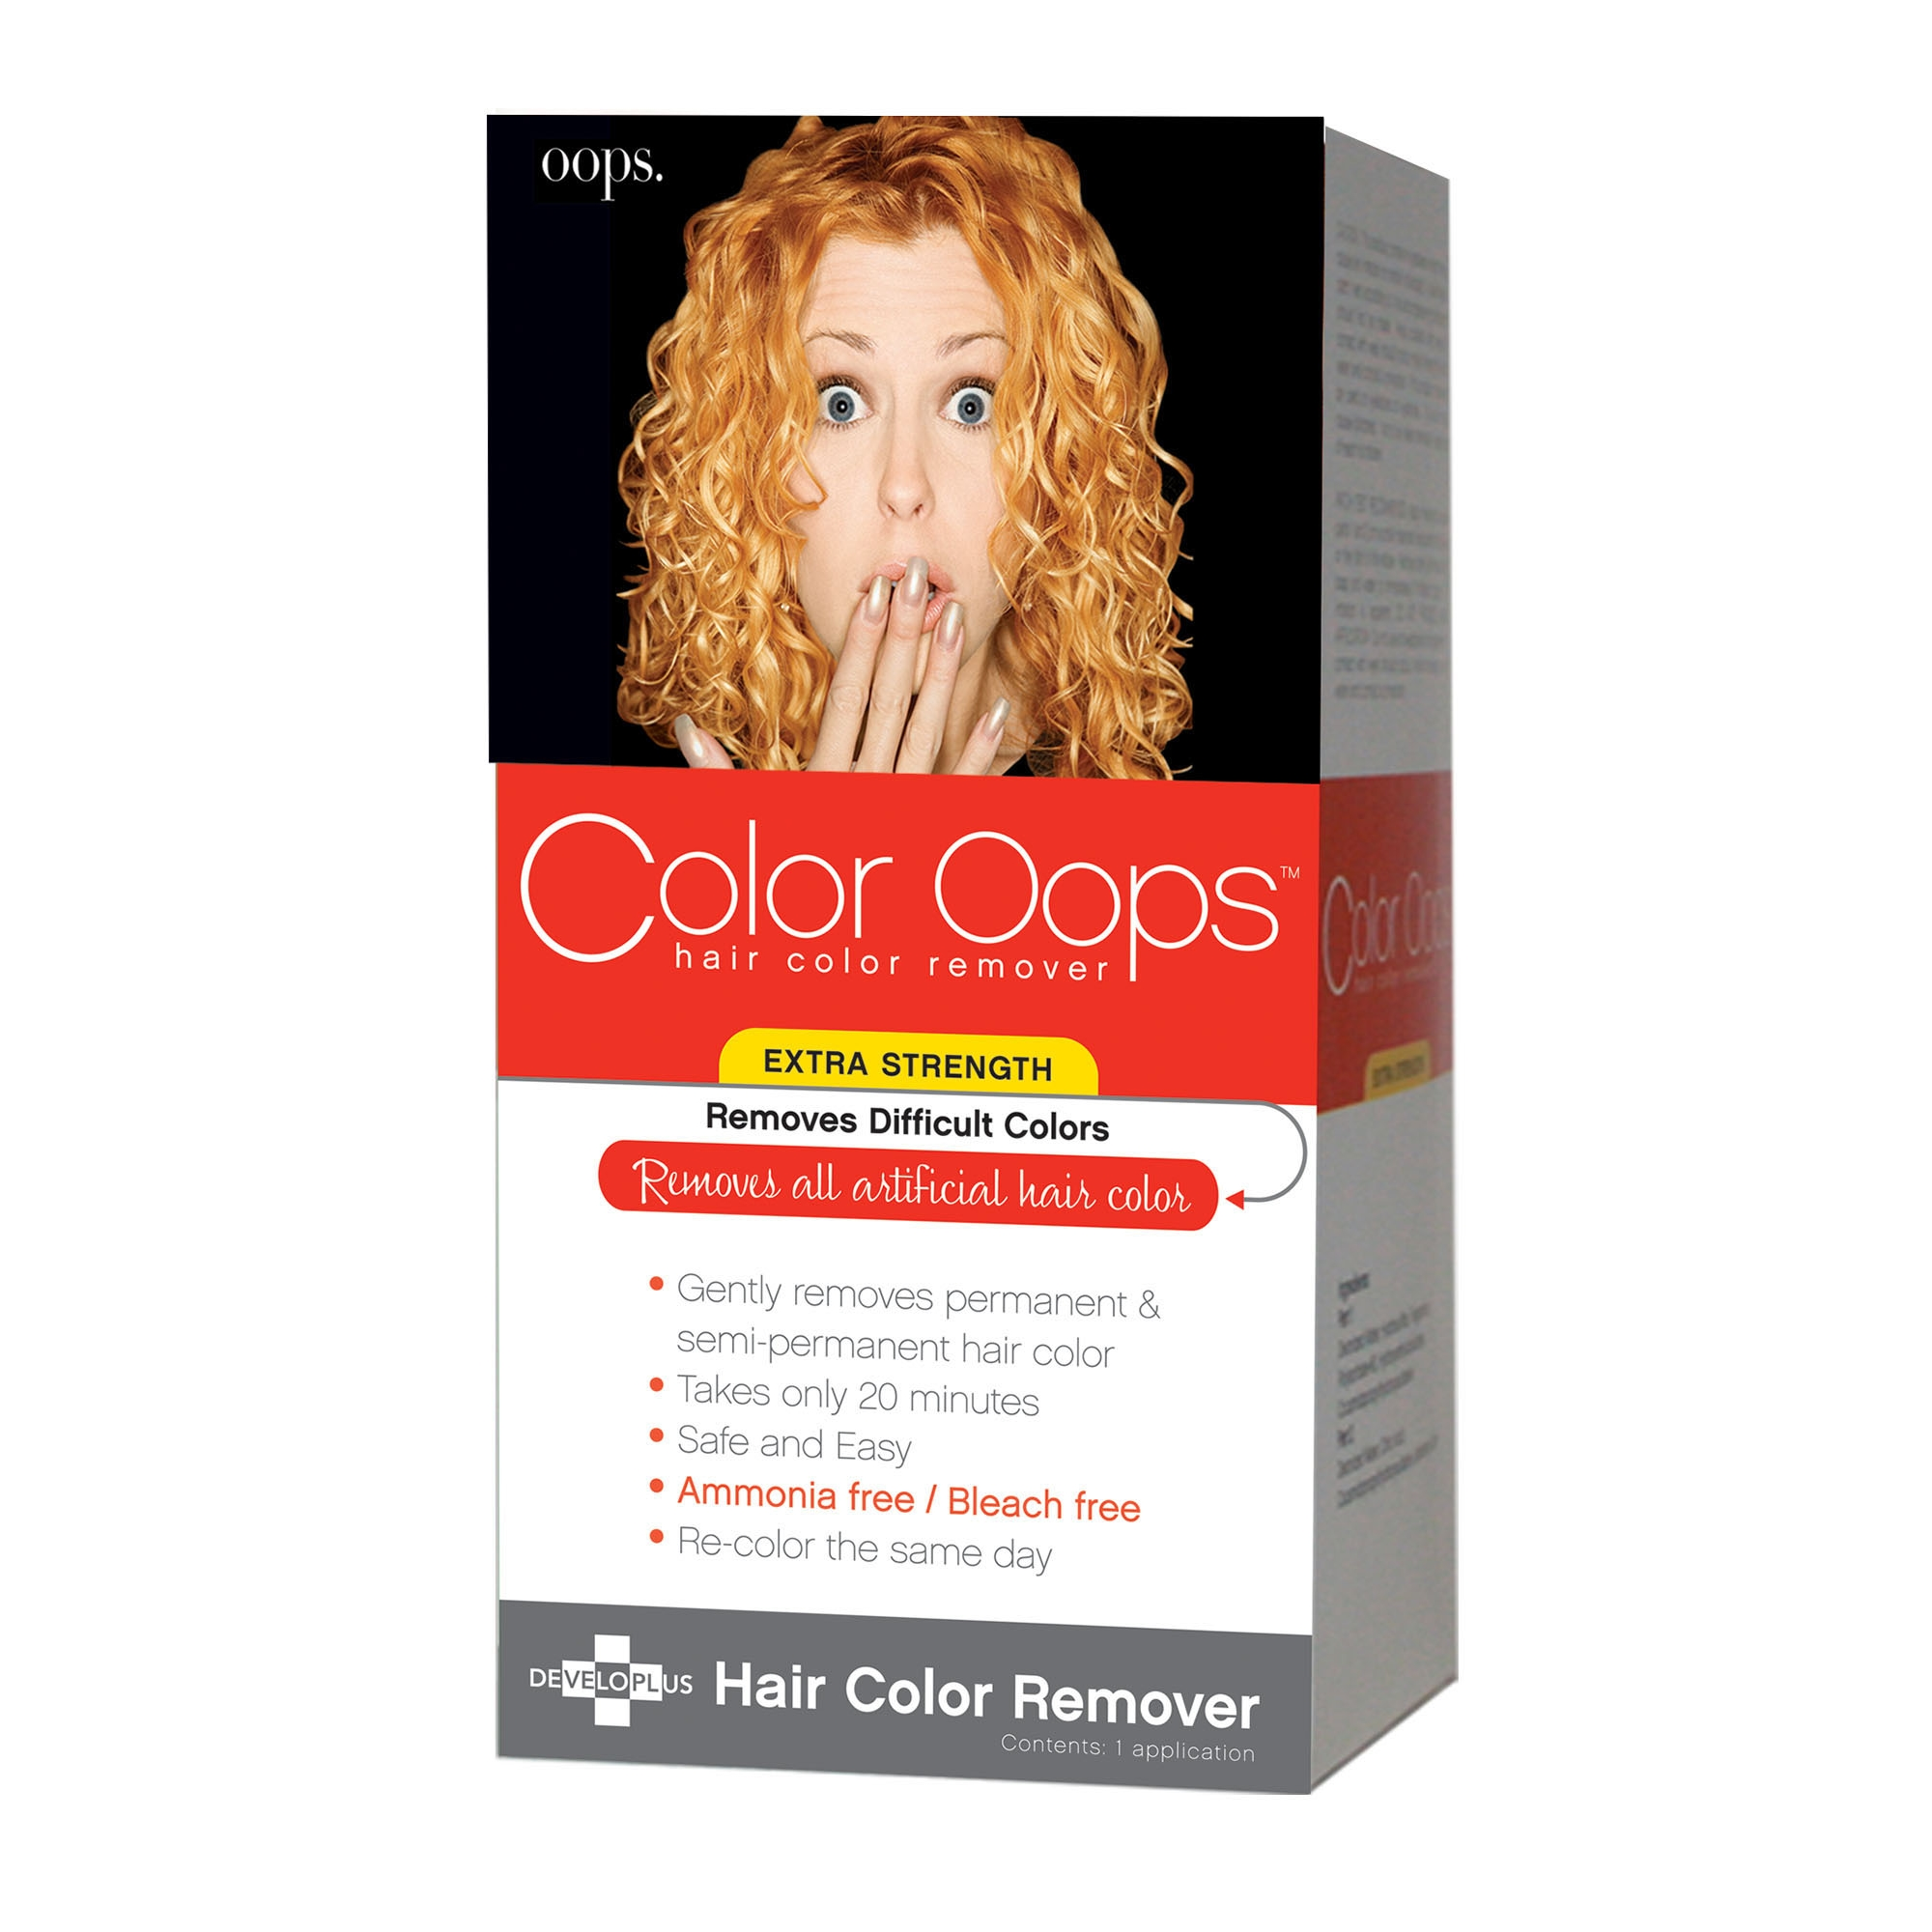 Color Oops Extra Strength Hair Color Remover